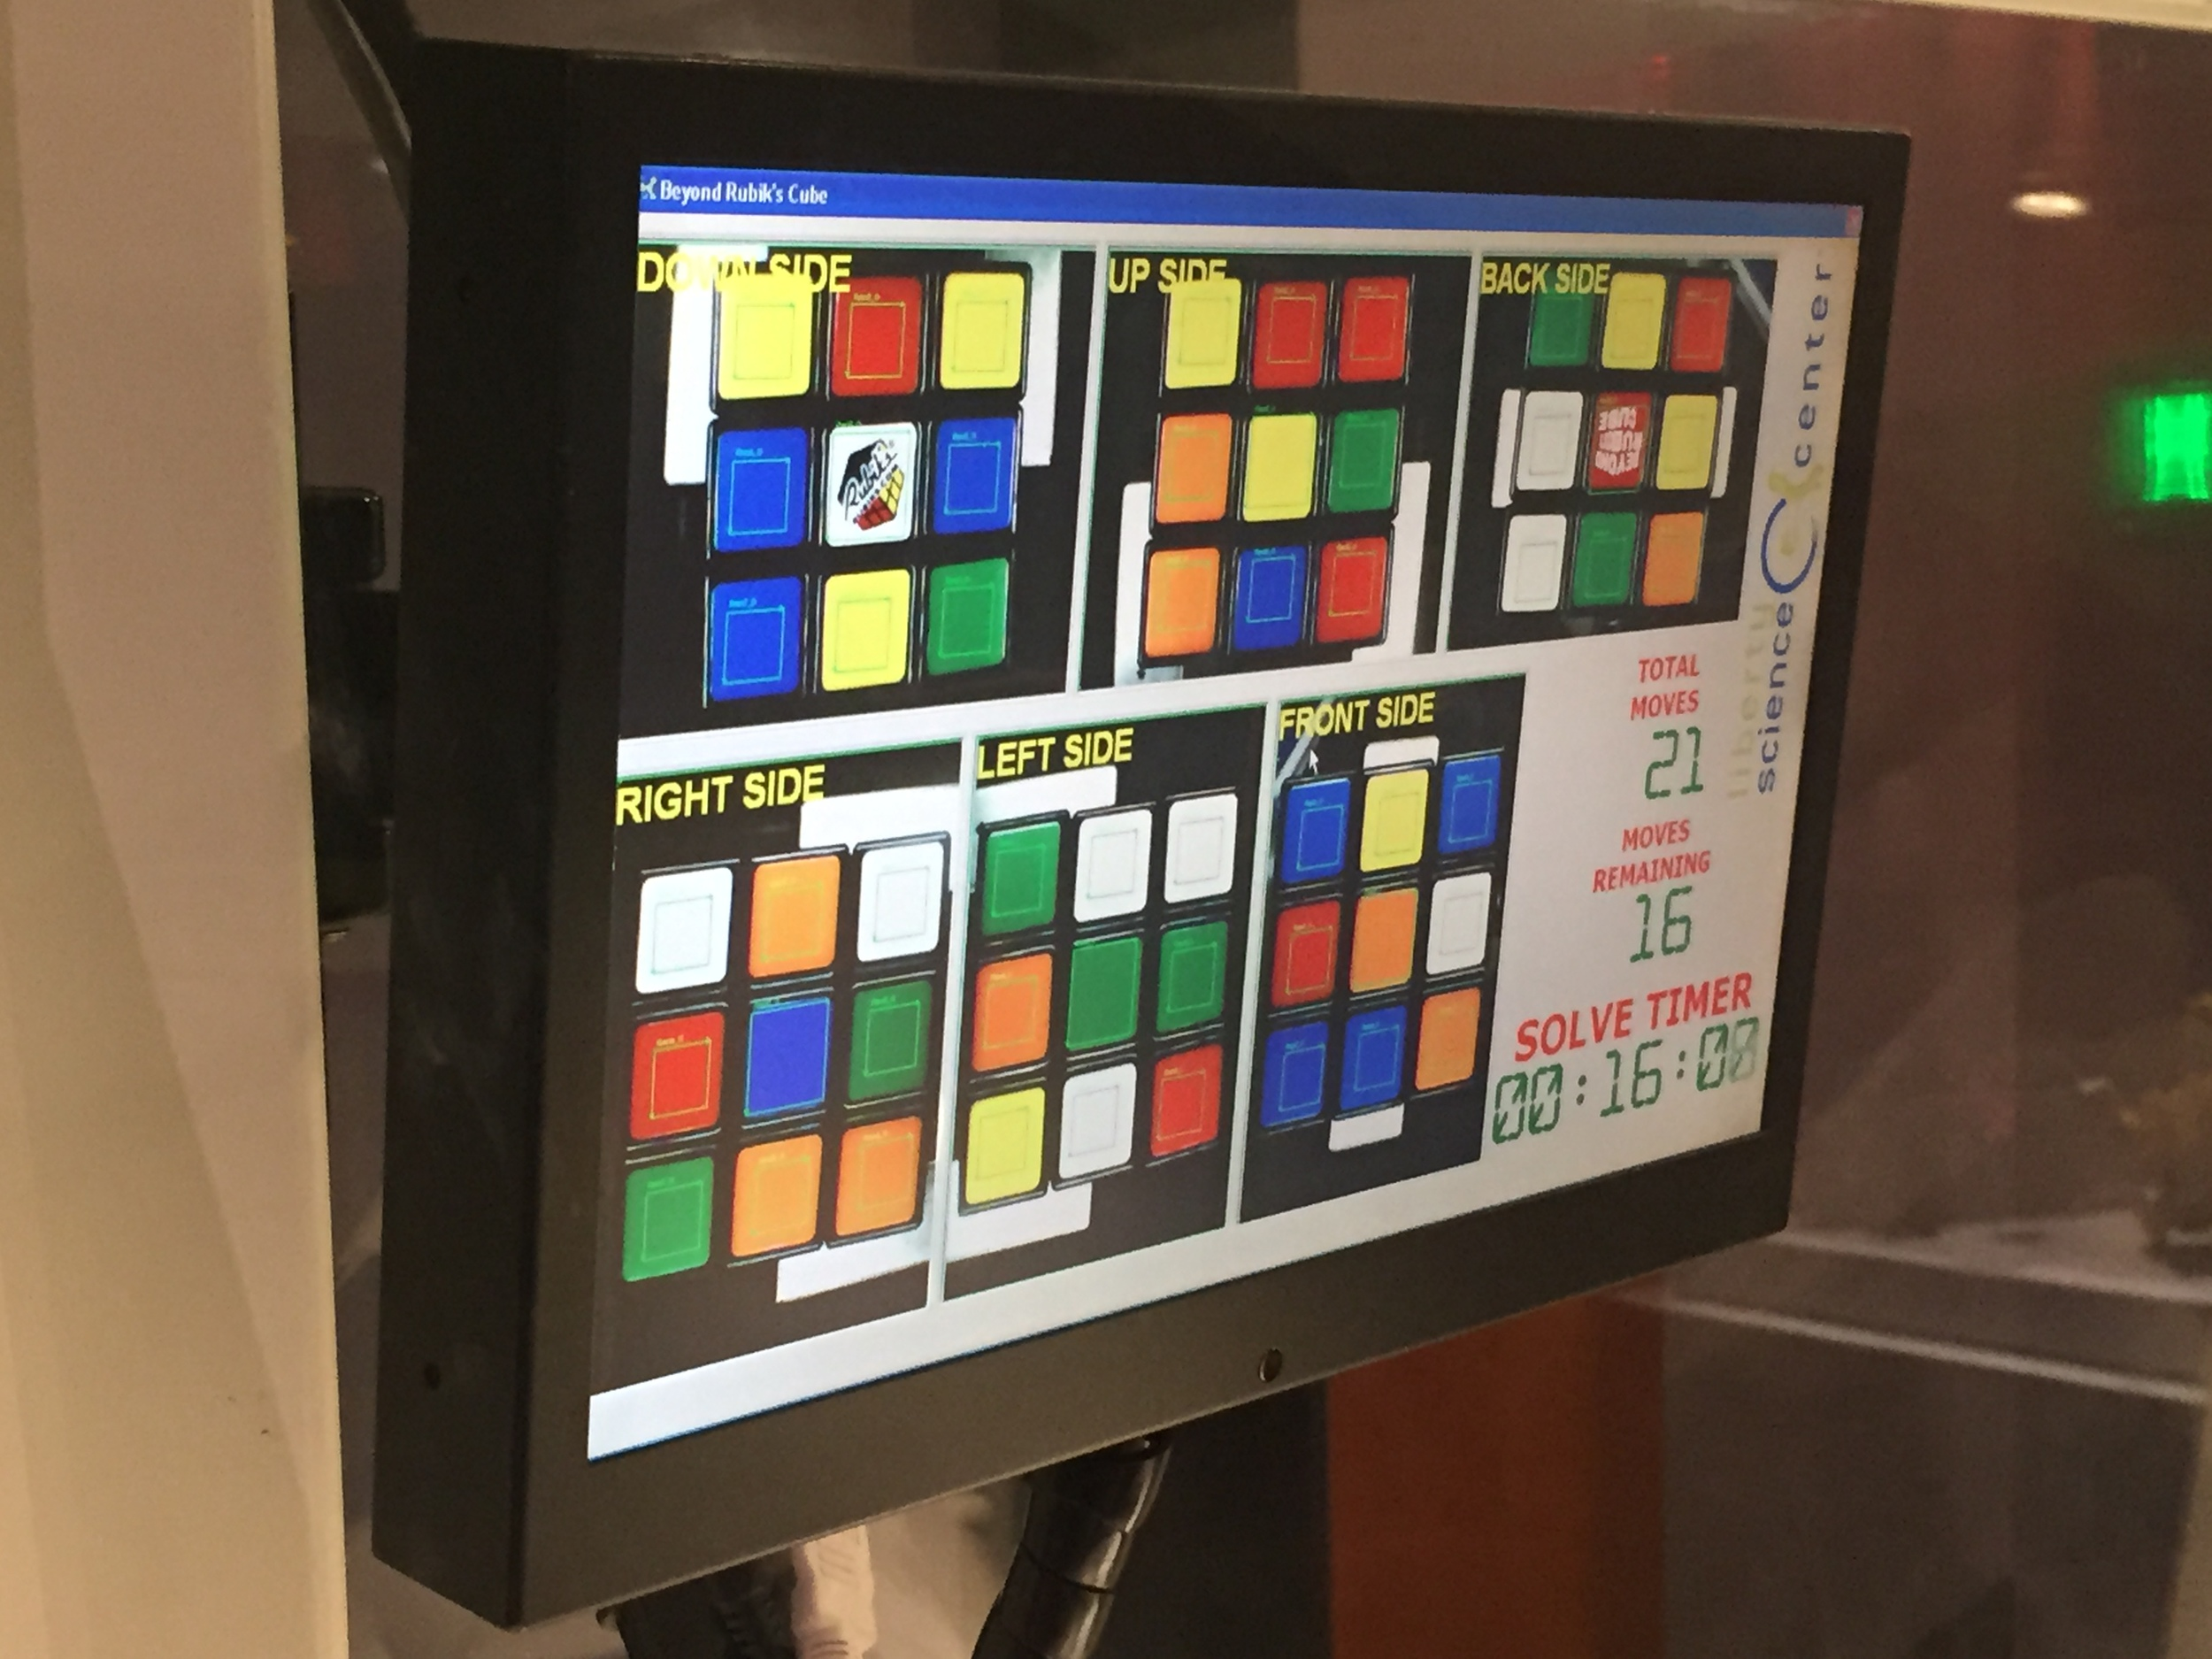 Screen display of the six sides of the cube the machine had to solve for along with total moves needed and timer